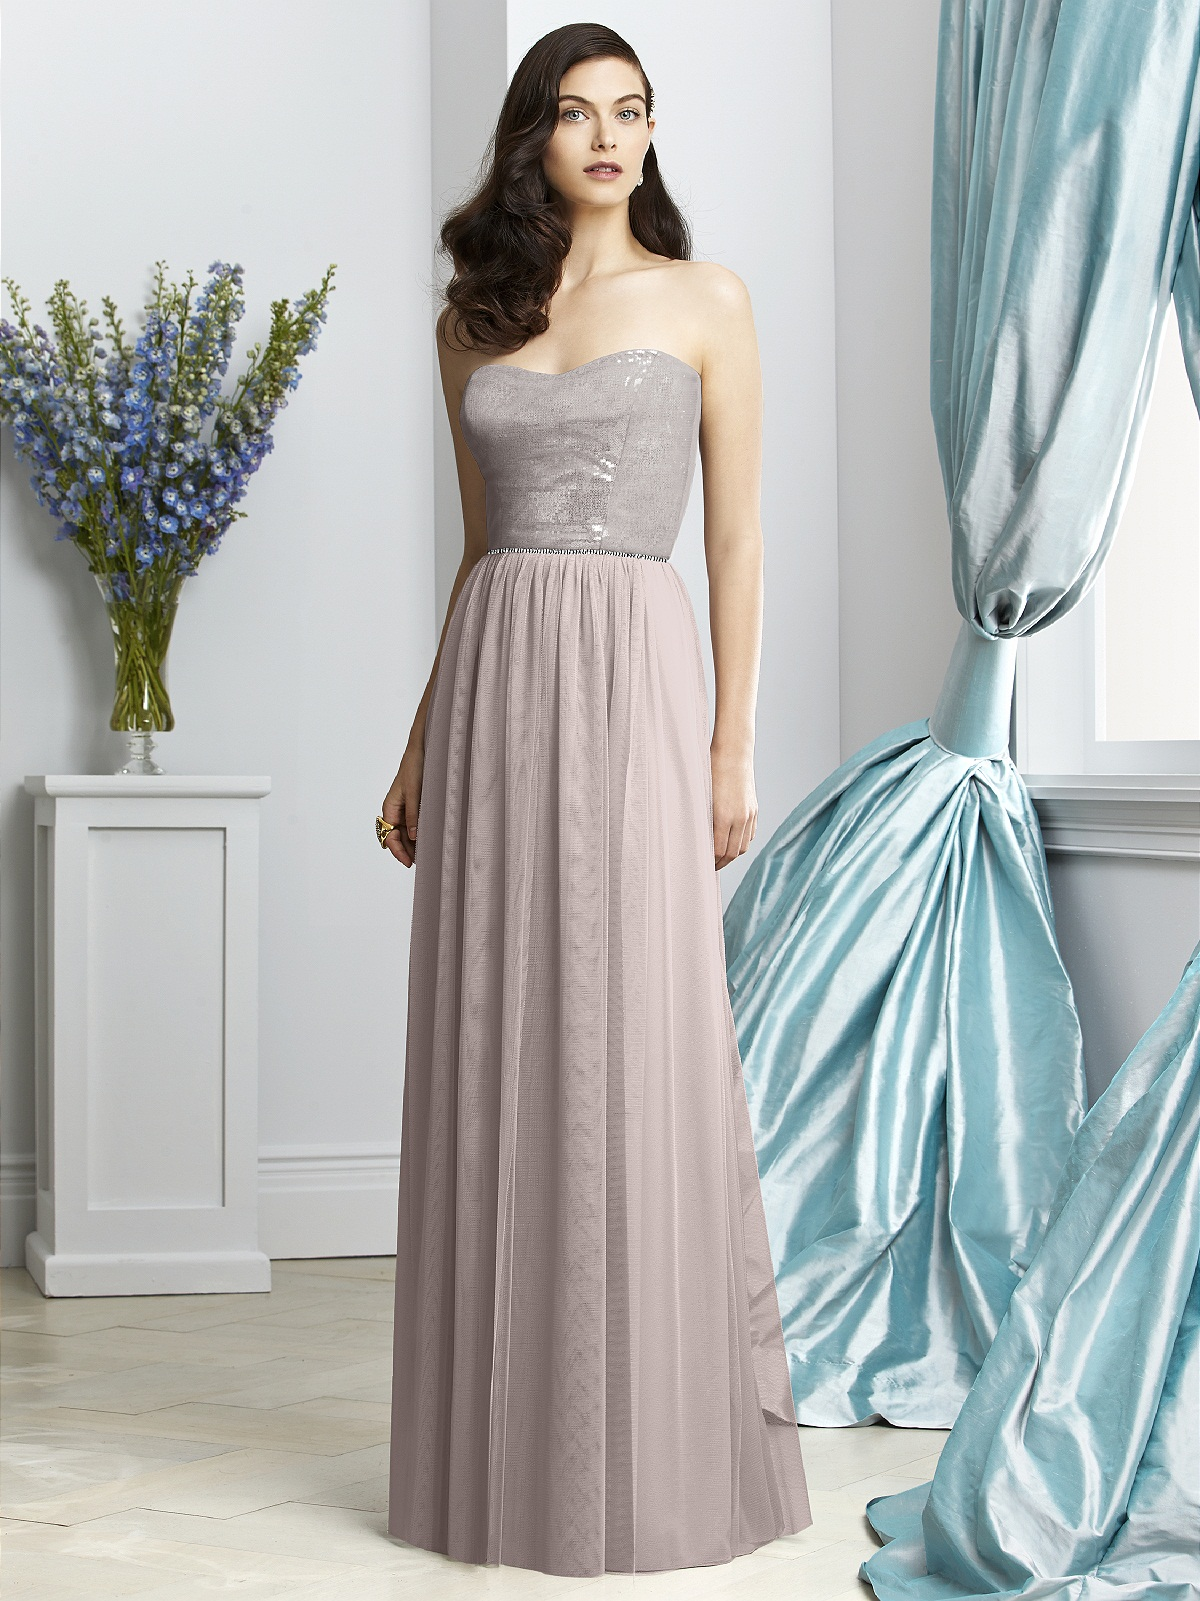 Dessy Bridesmaid Dresses - Premium Dresses at an Affordable Price ...